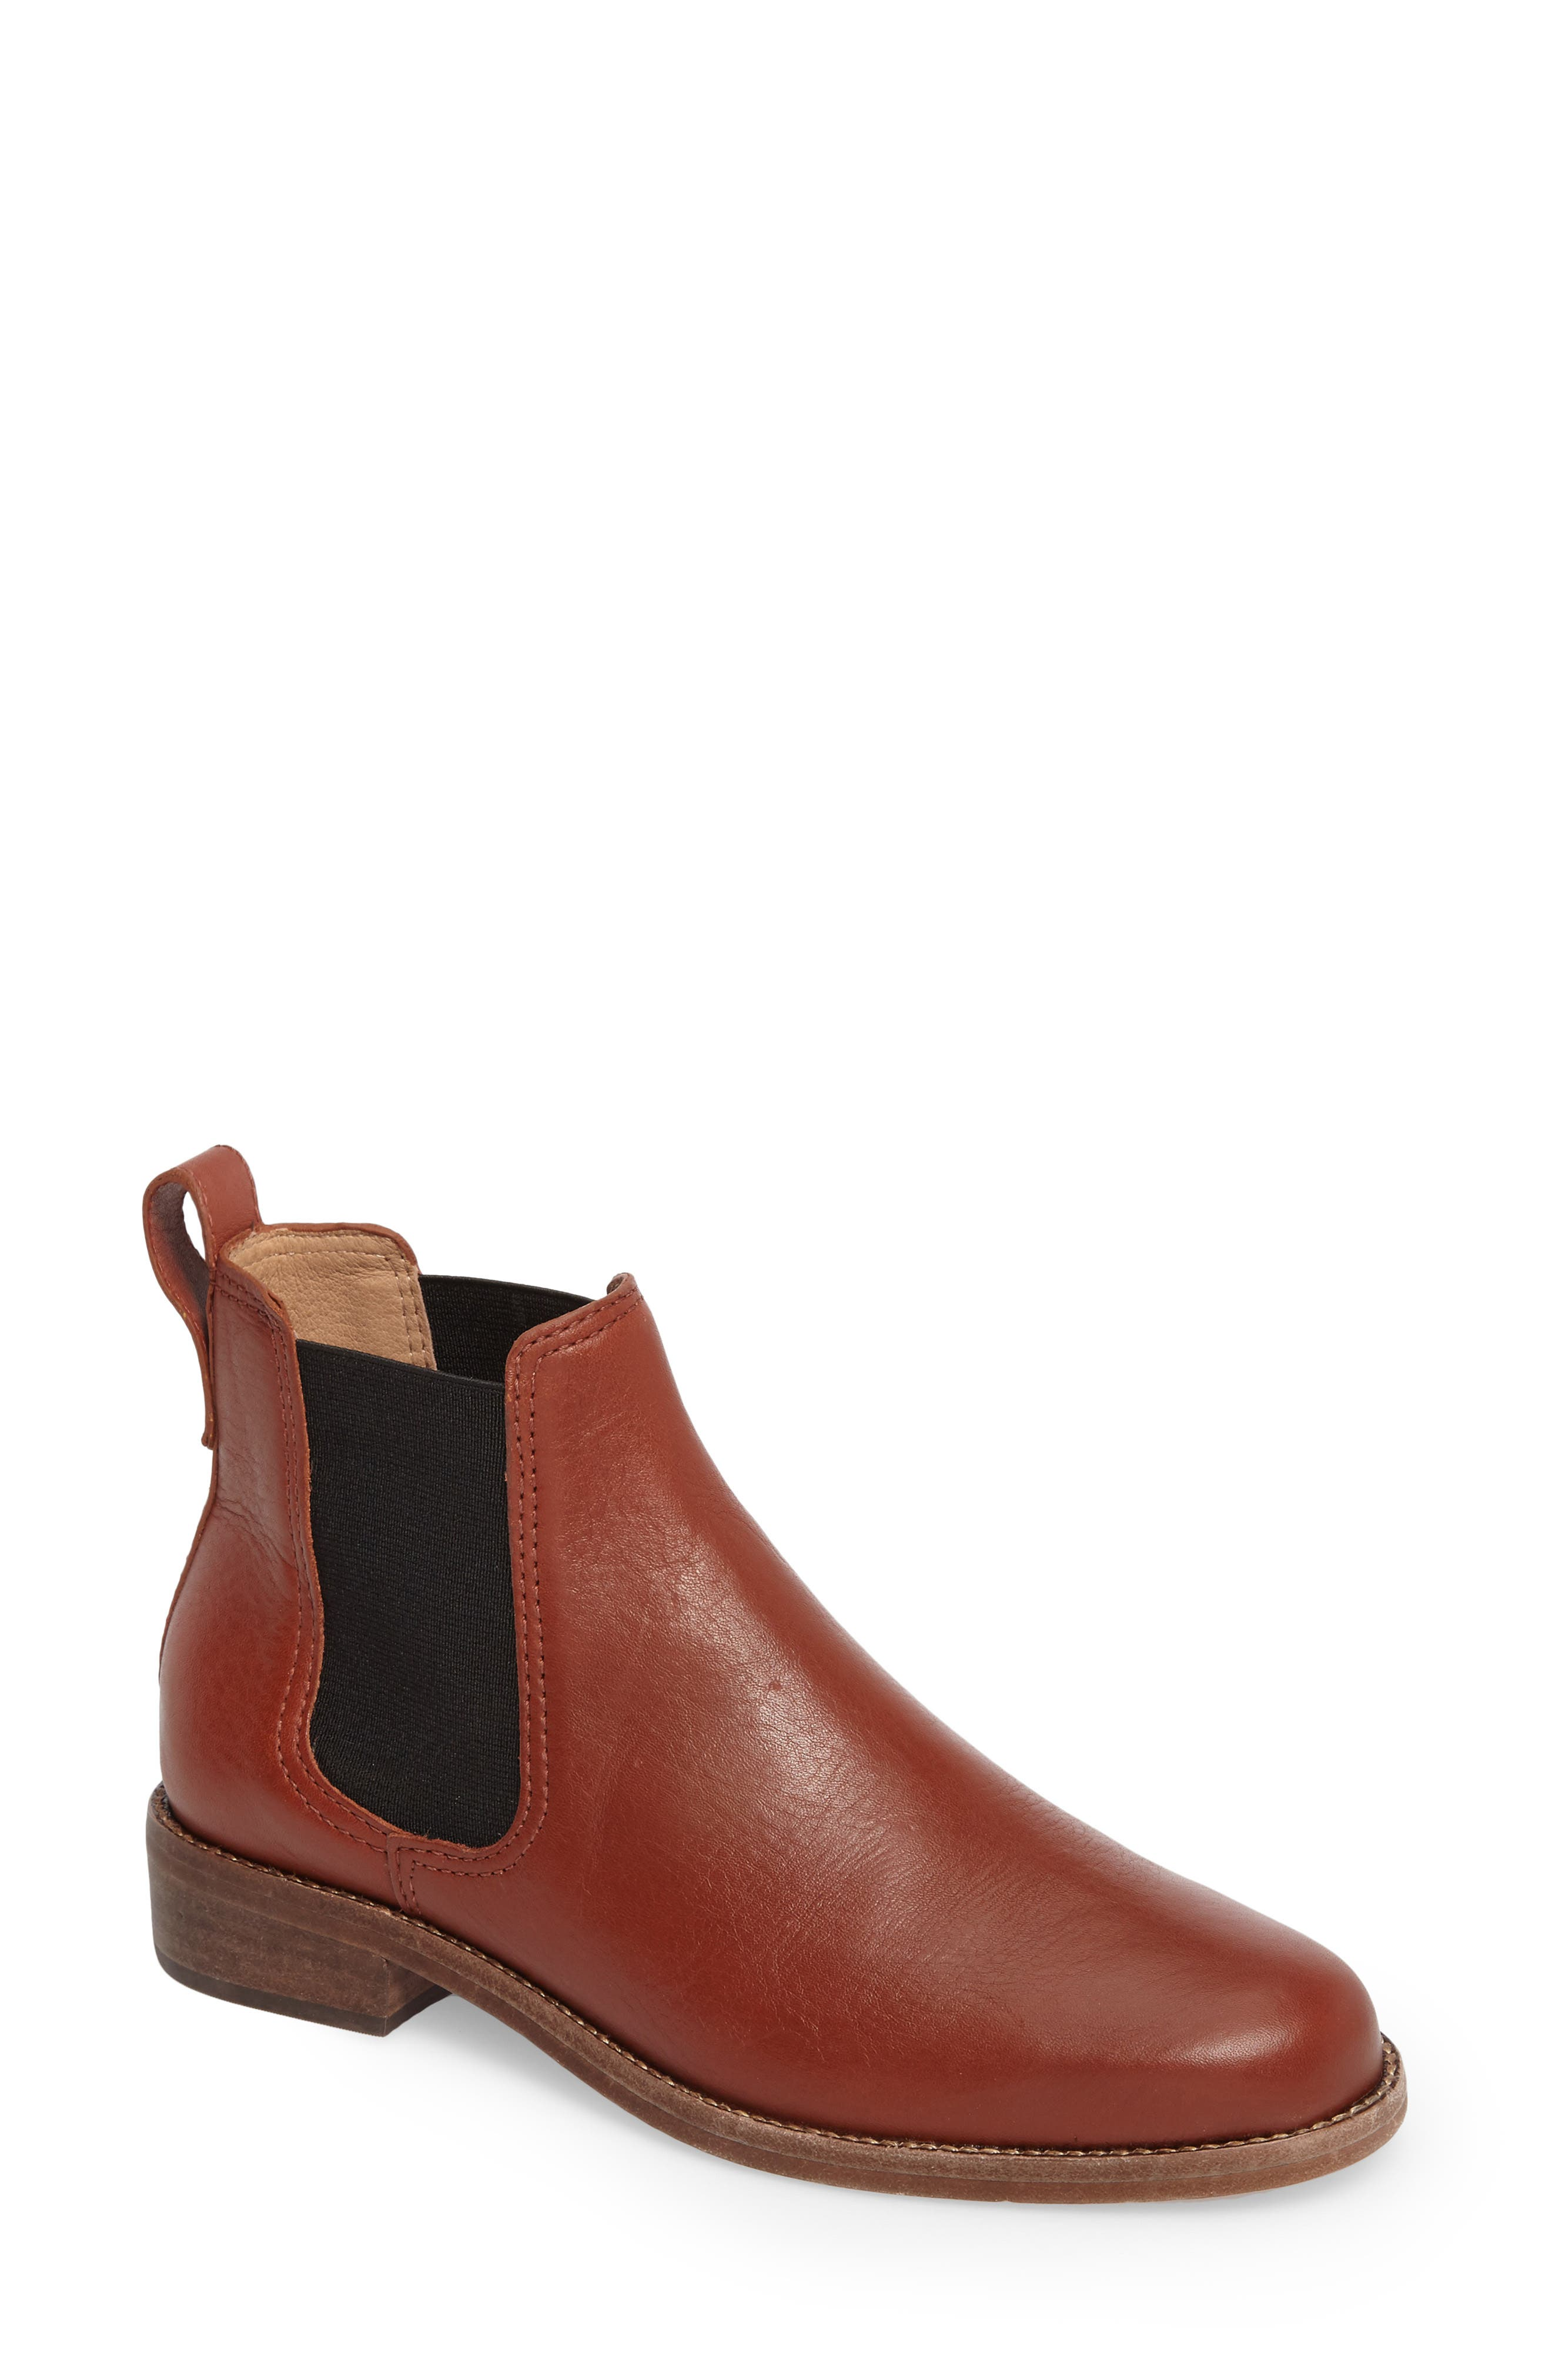 Ainsley Chelsea Boot,                         Main,                         color, Vintage Redwood Leather